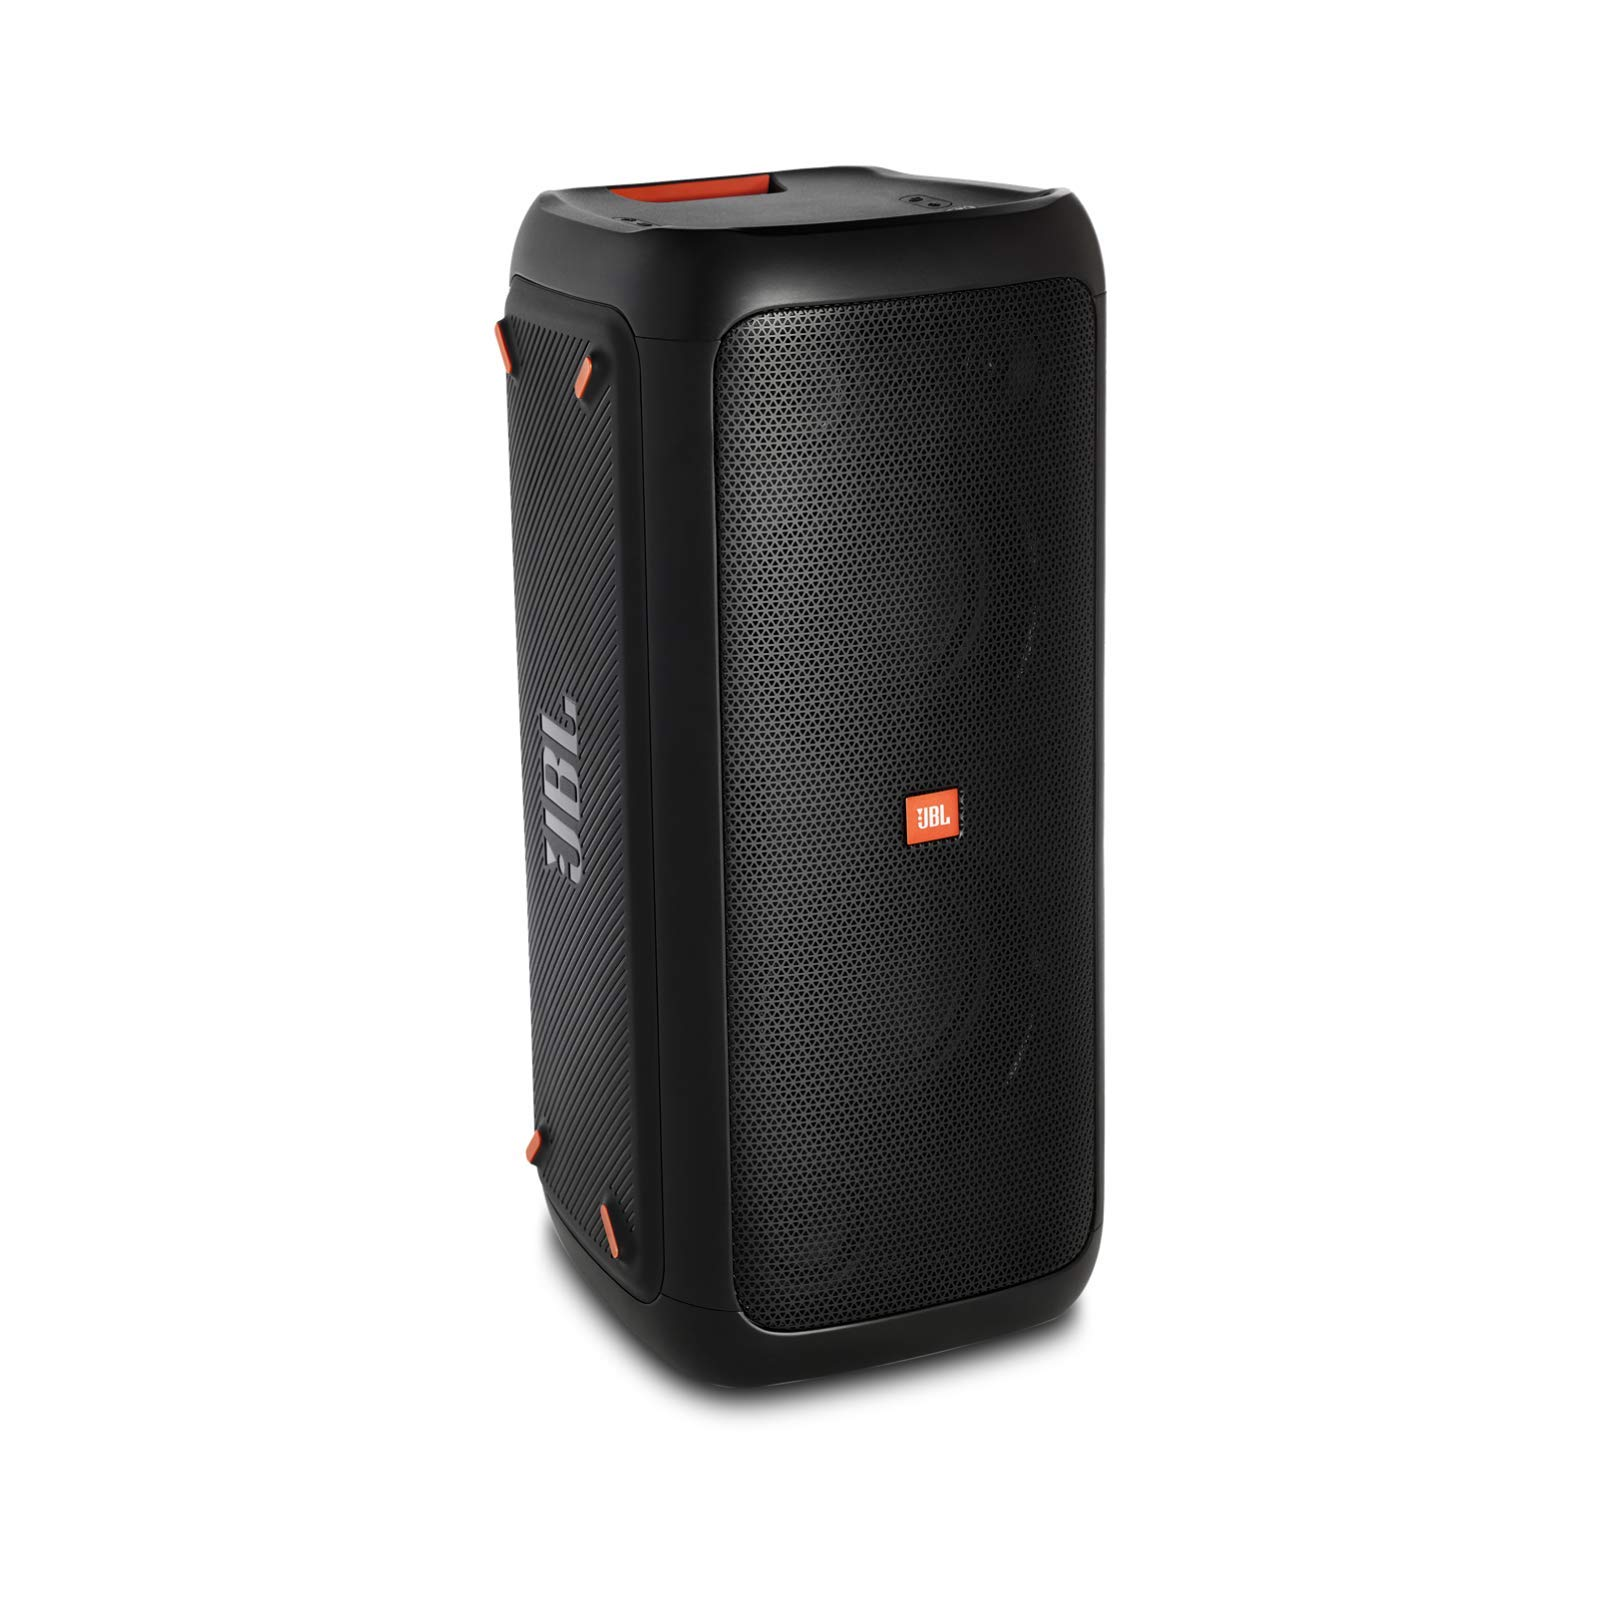 JBL PartyBox 300 High Power Portable Wireless Bluetooth Audio System with Battery - Black by JBL